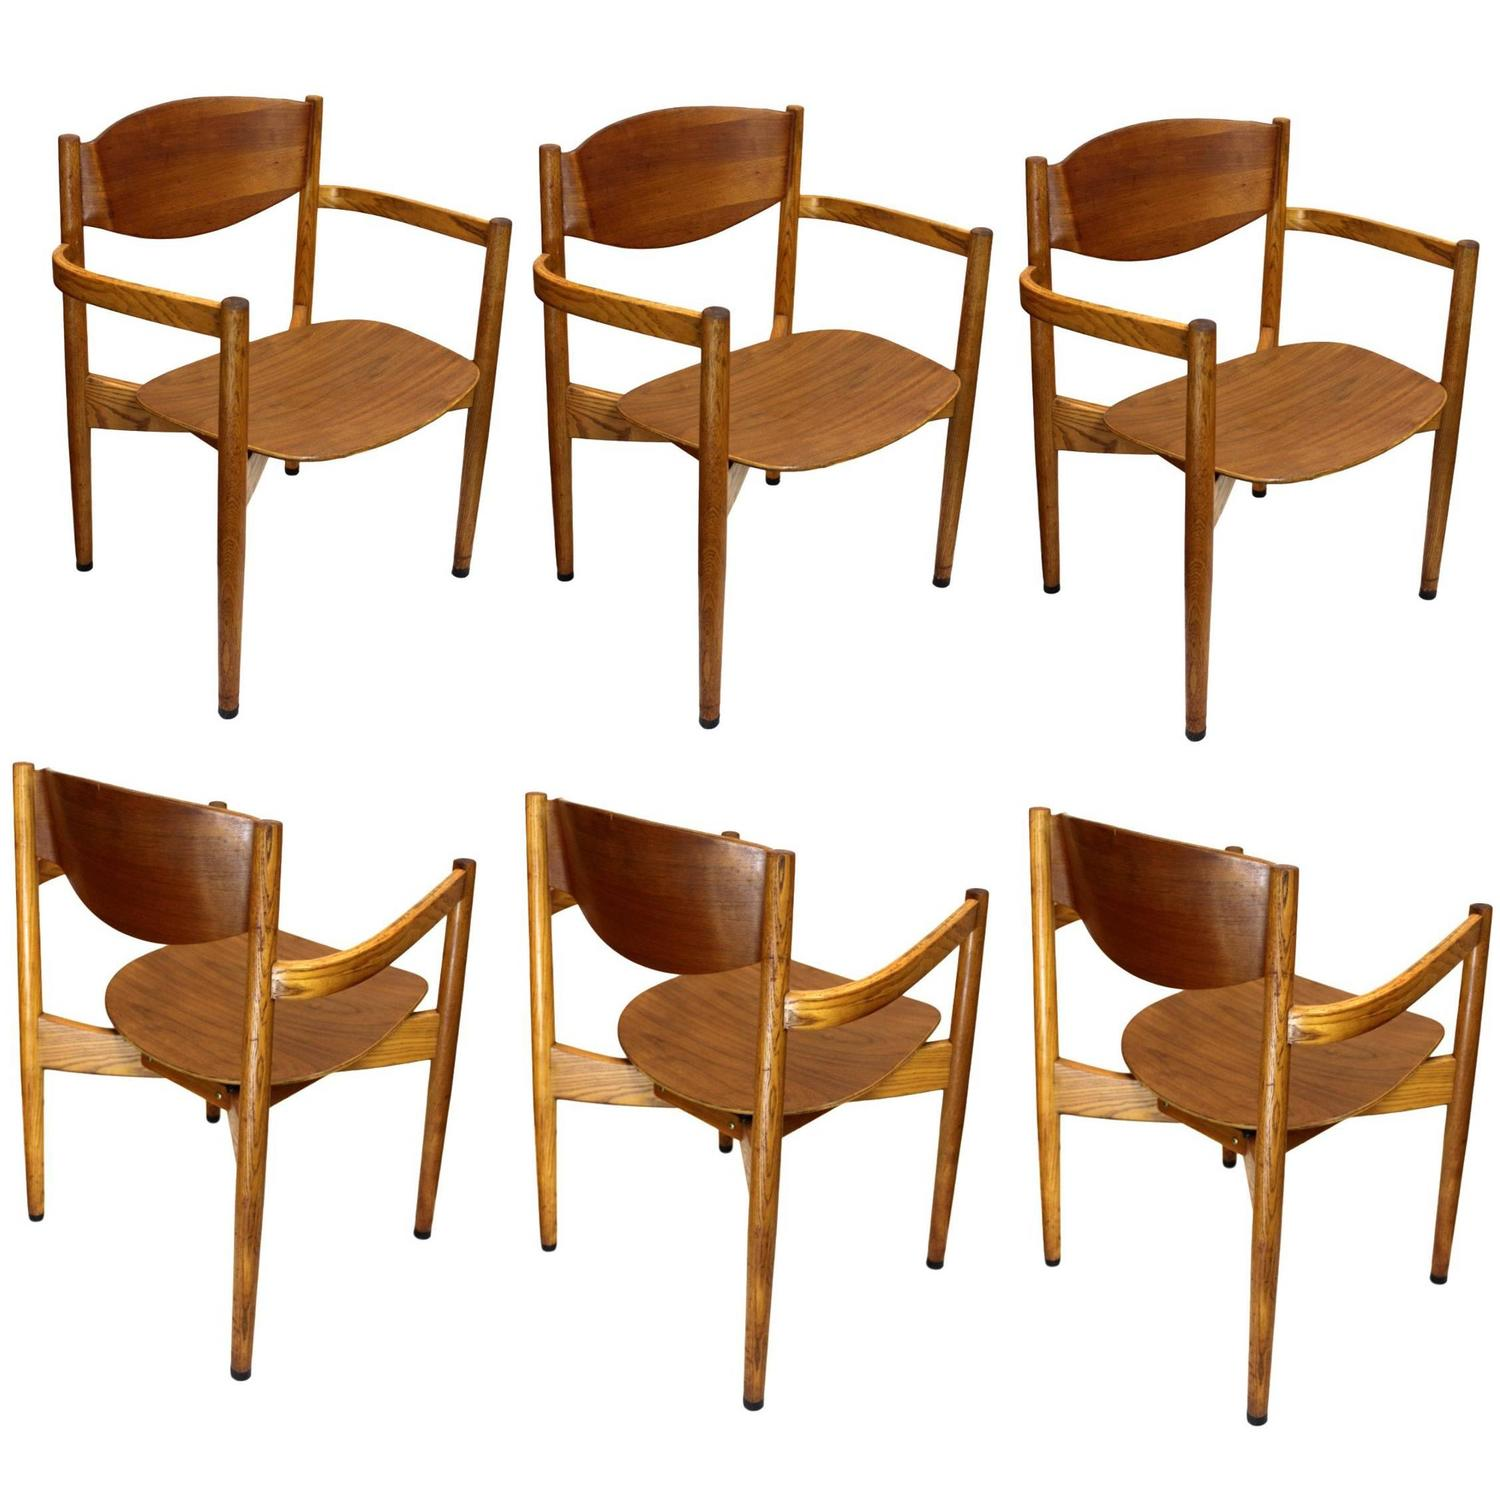 Set of Six Vintage Mid Century Modern Stacking Chairs by Jens